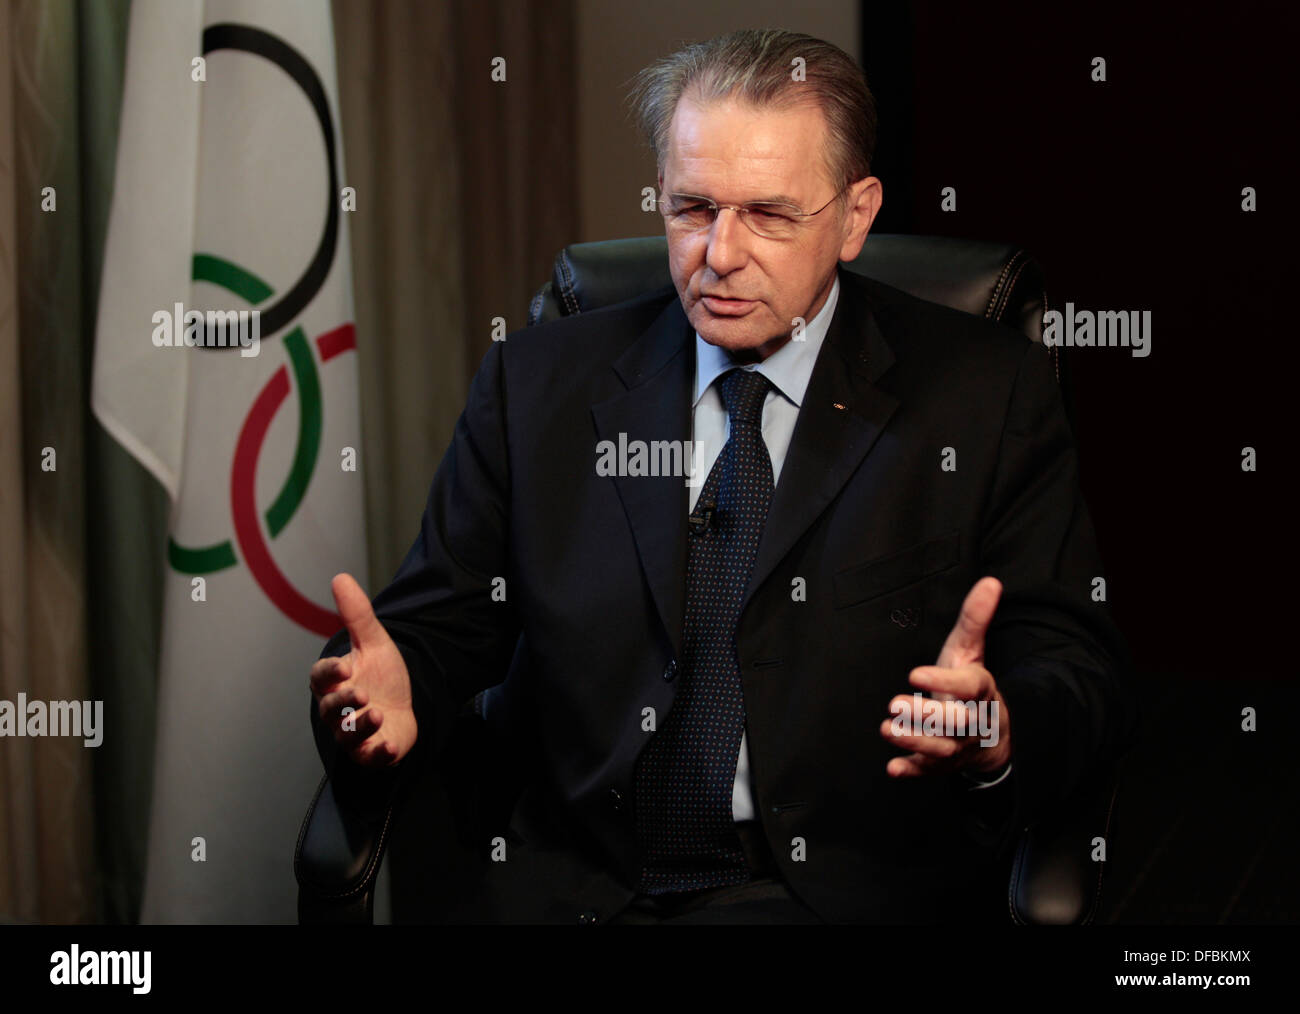 IOC President Jacques Rogge is photographed an interview during his visit to Durban for 7th World Conference on Sport Education - Stock Image